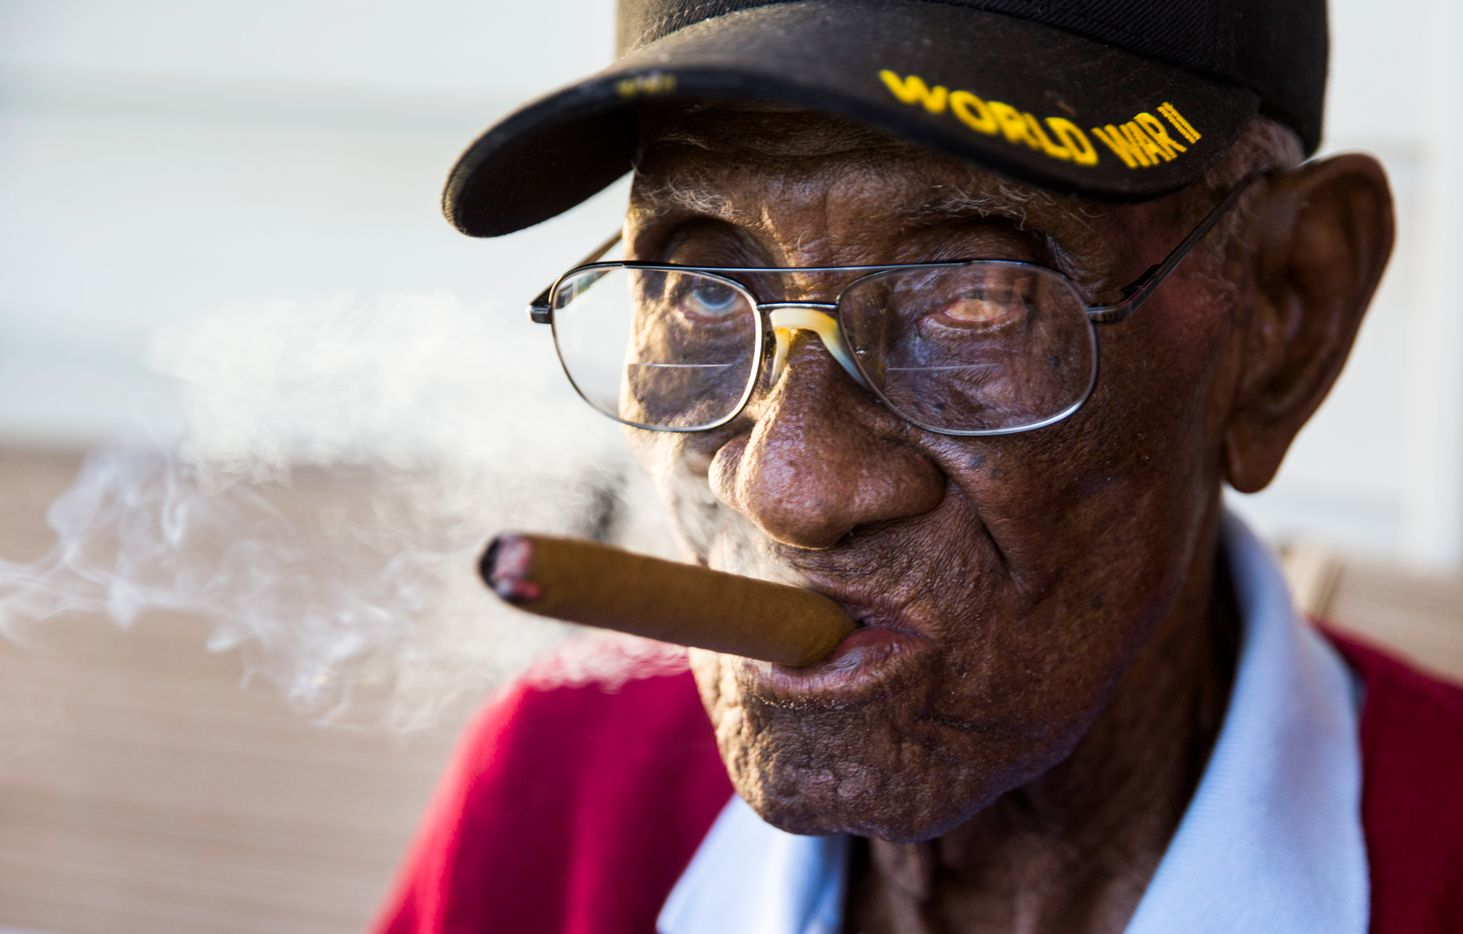 Richard Overton, 111, smokes a cigar on his front porch on Thursday, May 25, 2017, in Austin. Overton is known for smoking cigars and drinking whiskey on his front porch. He is the oldest living U.S. war veteran.